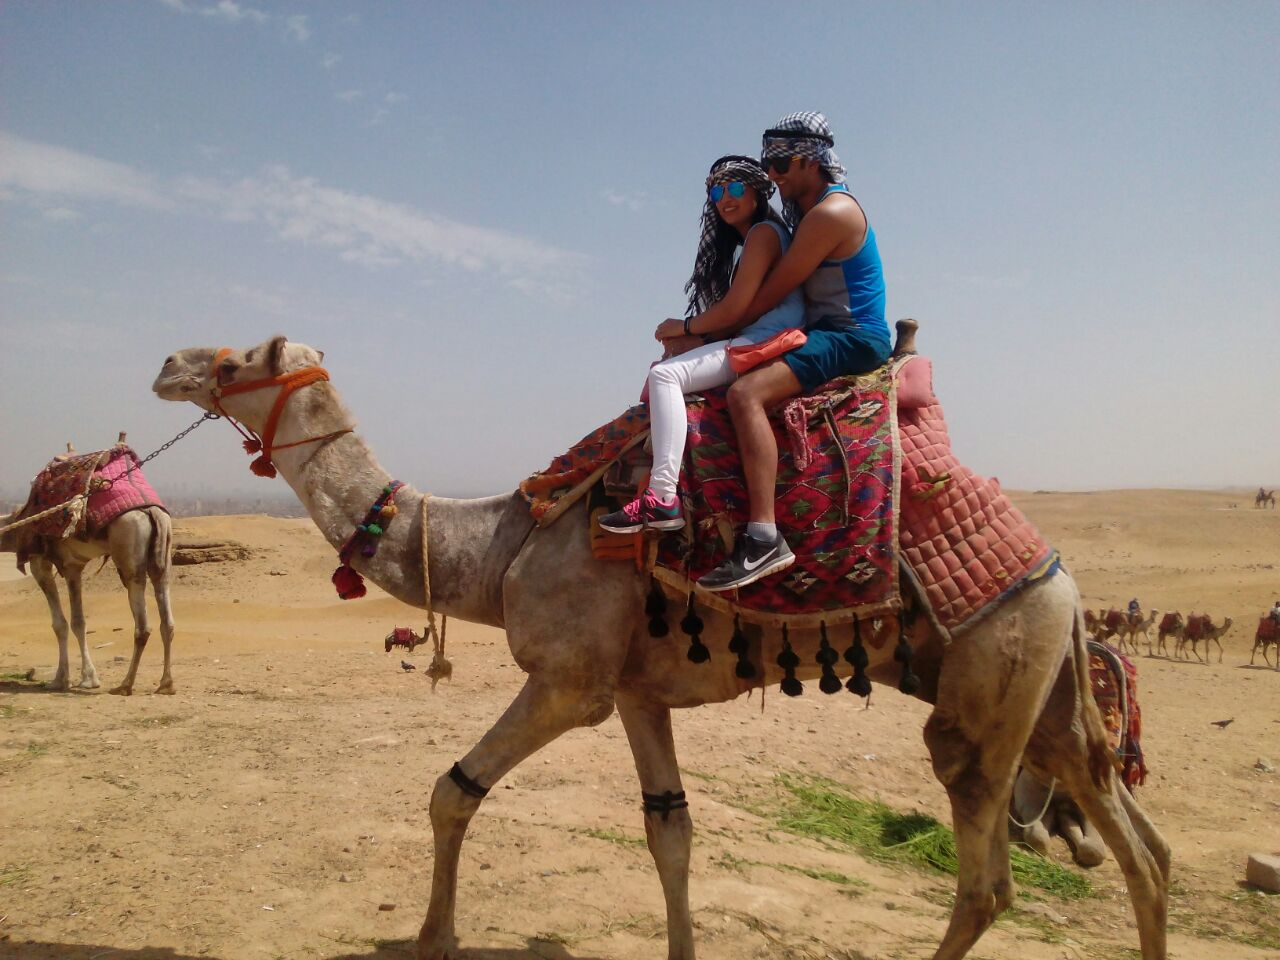 Camel Ride Trip at the Pyramids